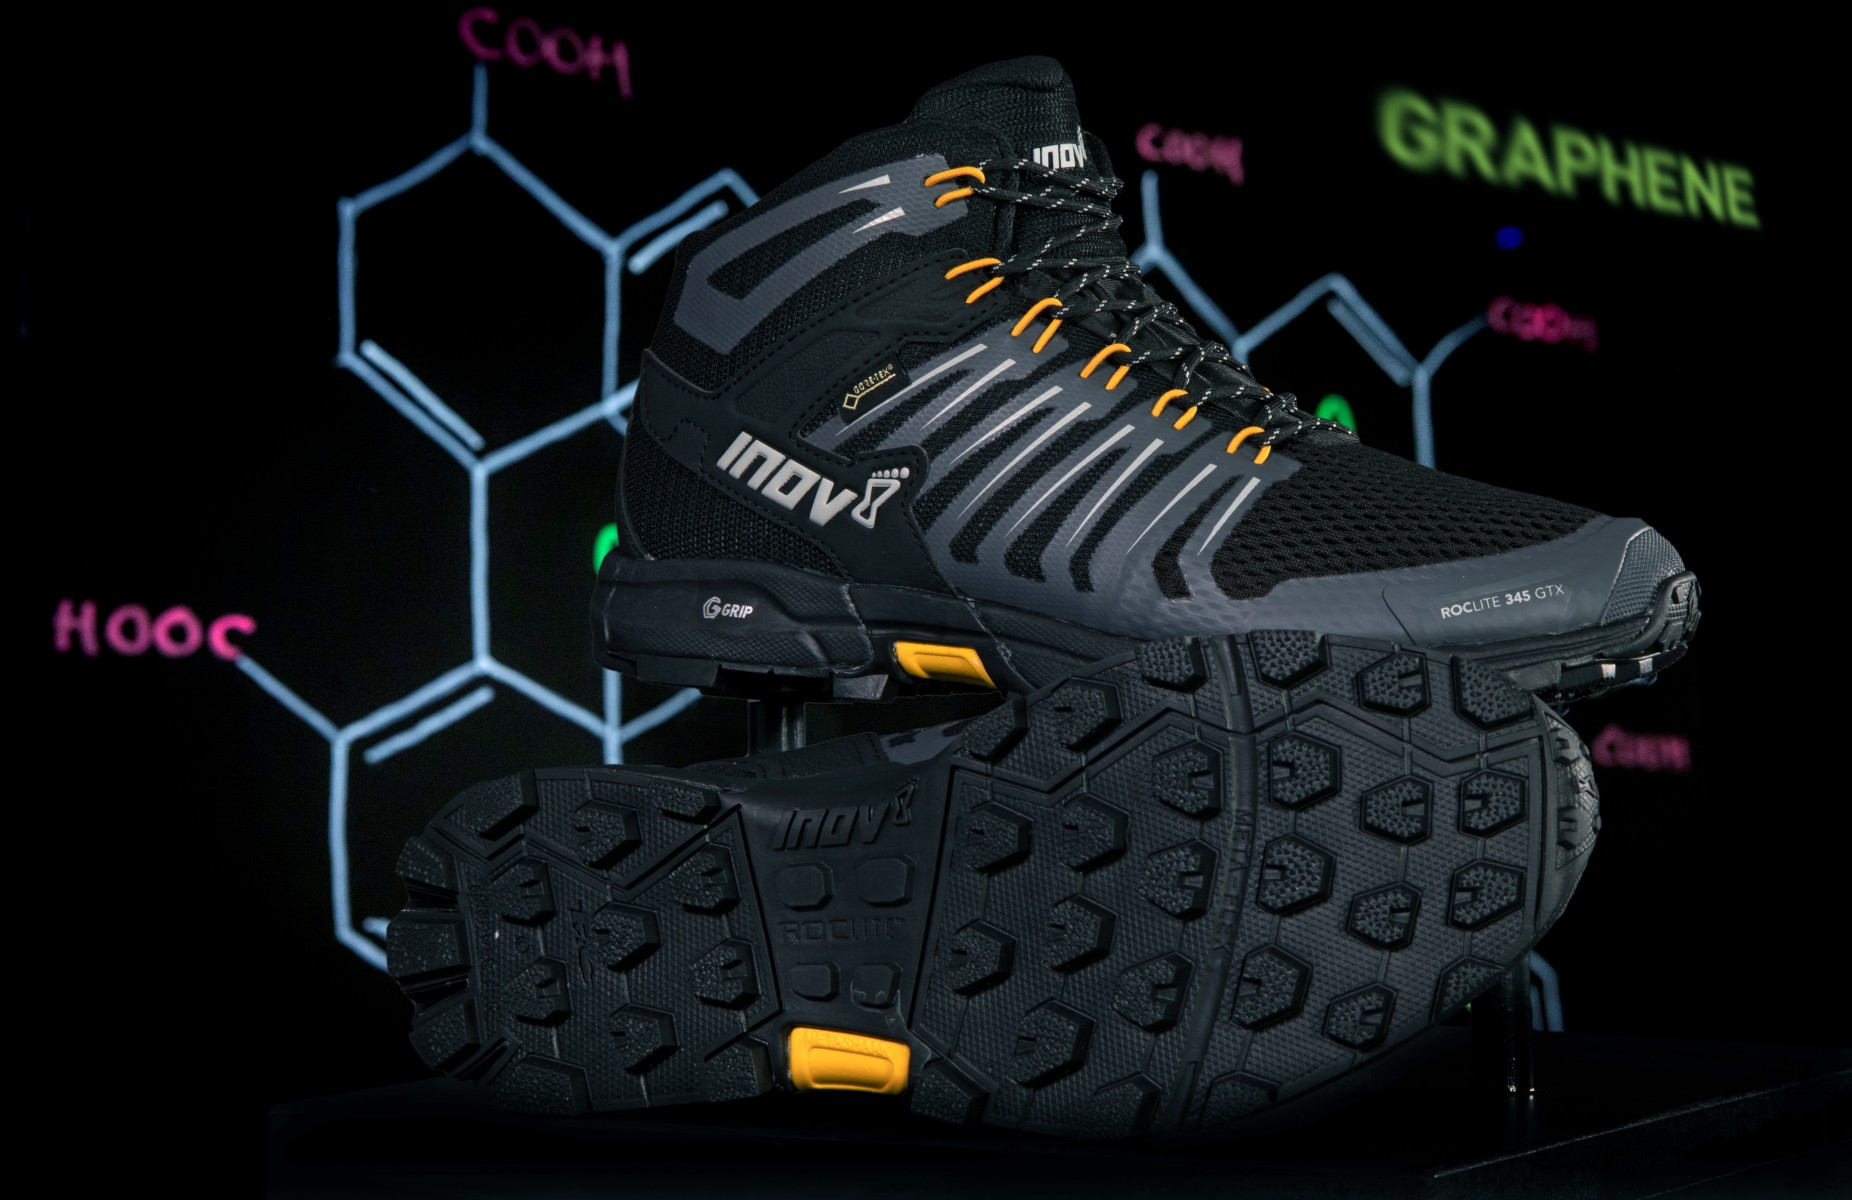 Inov-8 Graphene Insitute-ROCLITE 345 GTX ORANGE